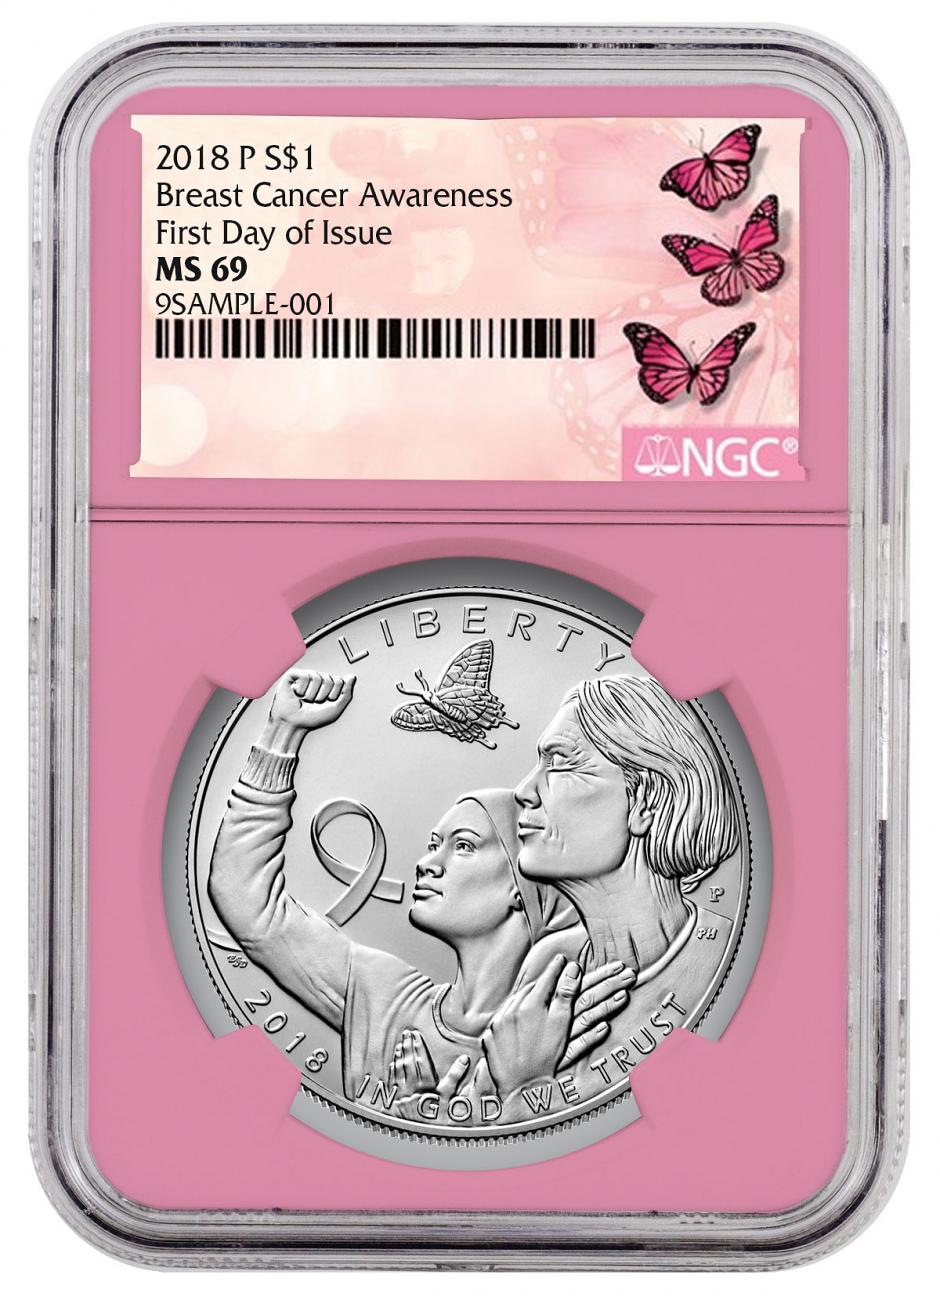 2018-P Breast Cancer Awareness Commemorative Silver Dollar Coin NGC MS69 FDI Pink Core Holder Breast Cancer Label